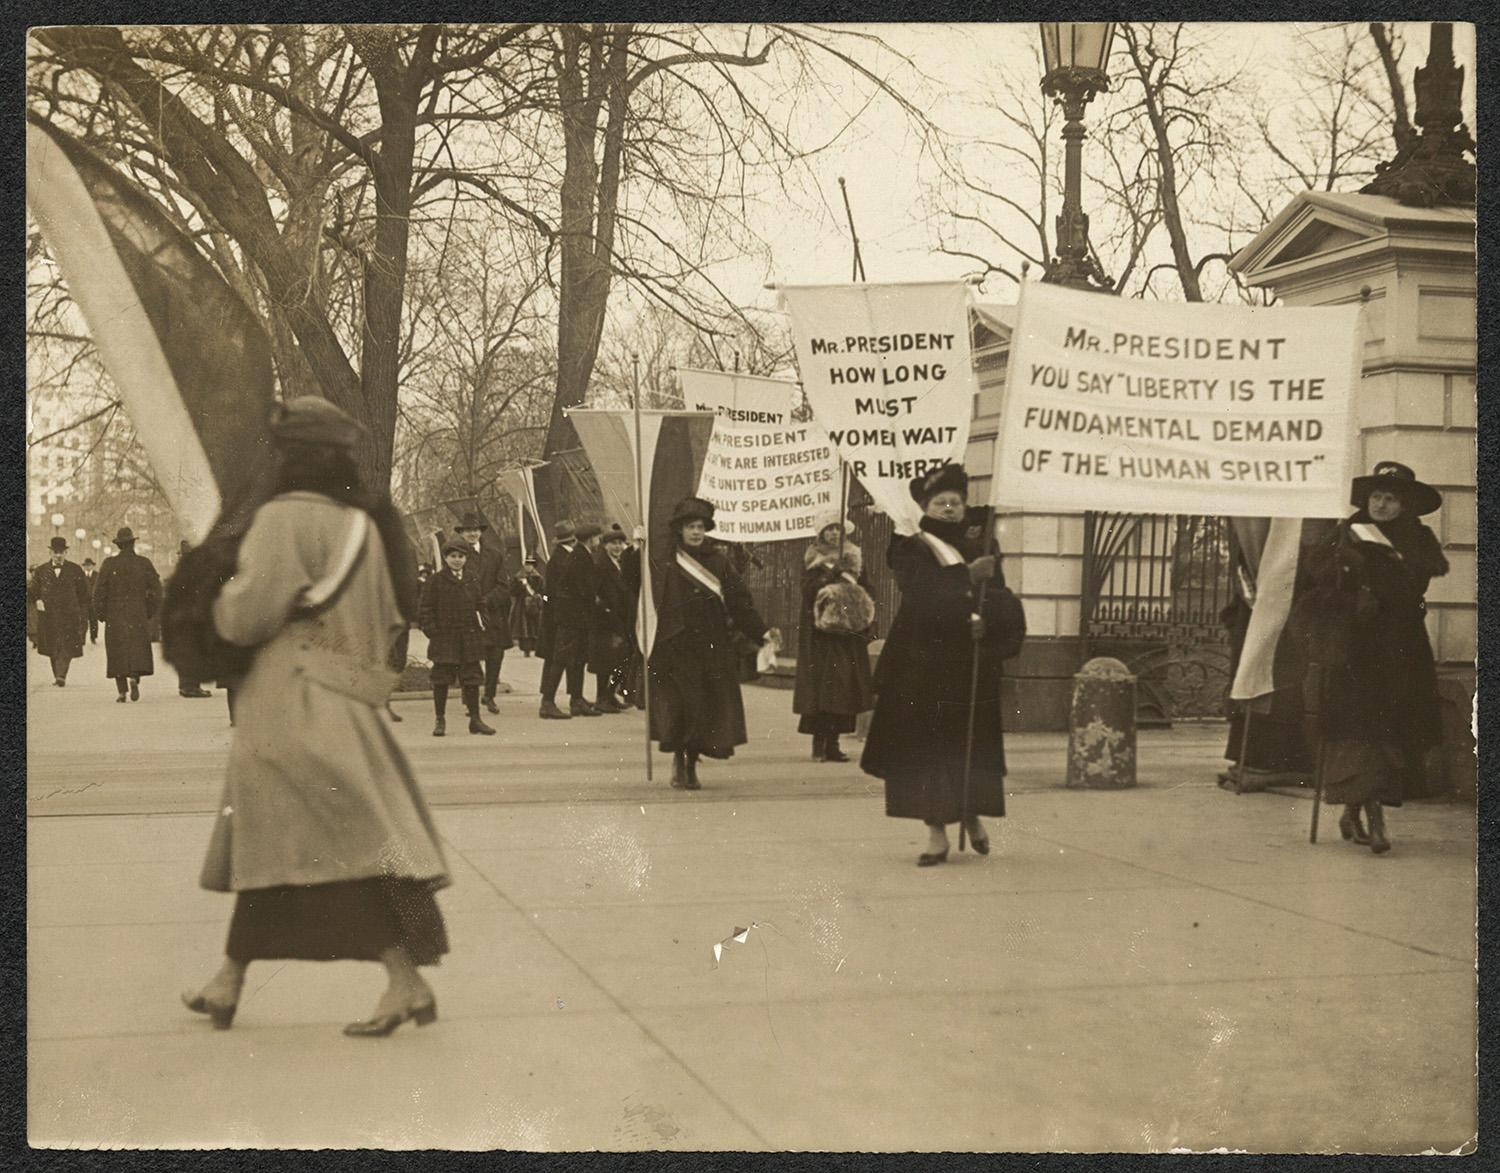 """<p>Suffragists picket with banners in front of the White House gates, Jan. 26, 1917. Banners read: """"Mr. President You Say Liberty Is The Fundamental Demand of the Human Spirit,"""" """"Mr. President How Long Must Women Wait for Liberty?"""" (Records of the National Woman's Party/Library of Congress) </p>"""